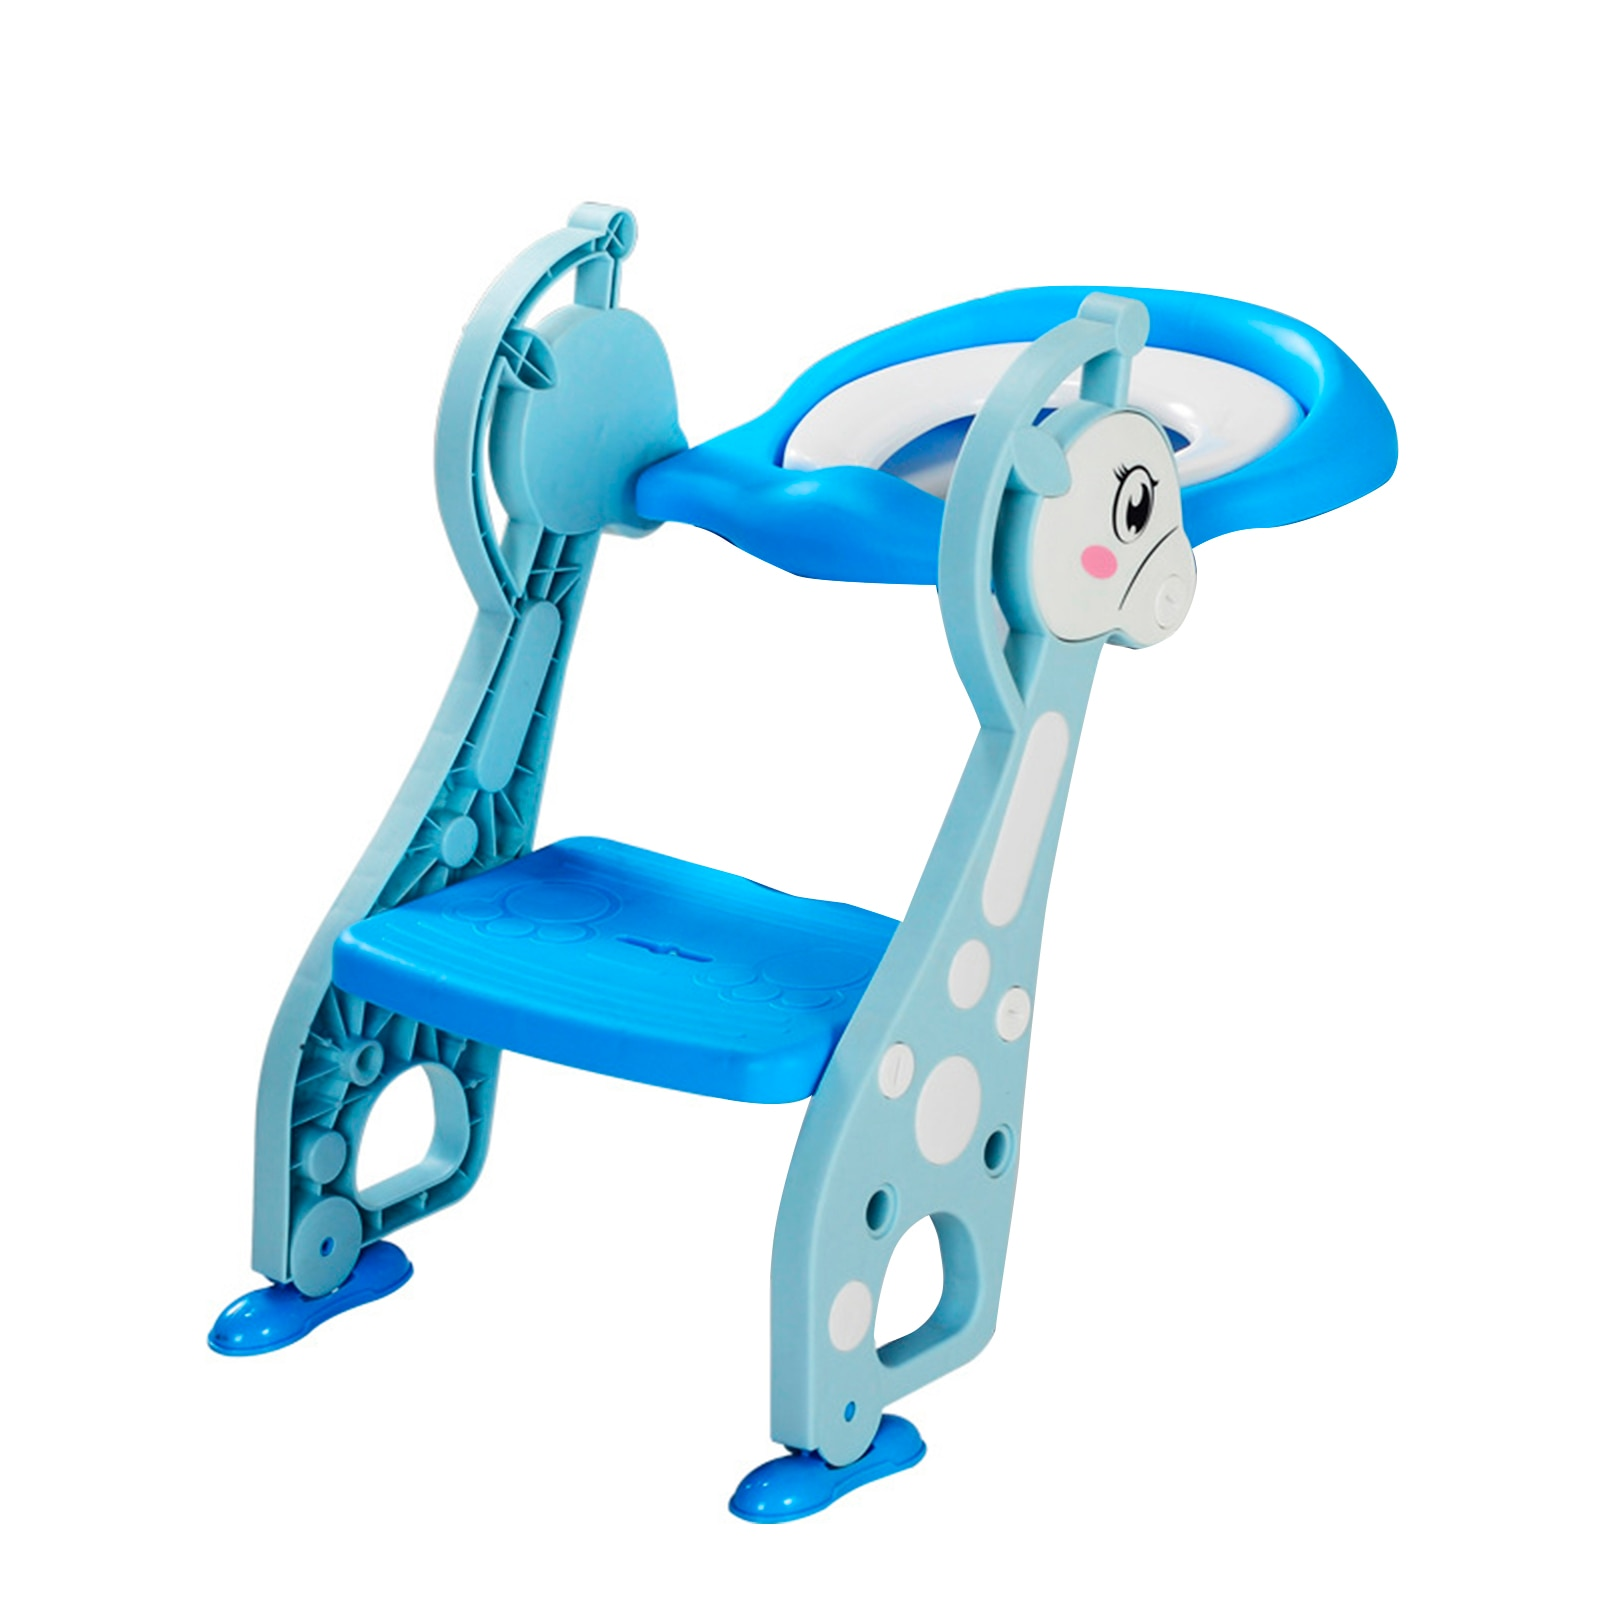 Adjustable Foldable Toddler Toilet Training Seat Potty With Sturdy Non-Slip Ladder Step